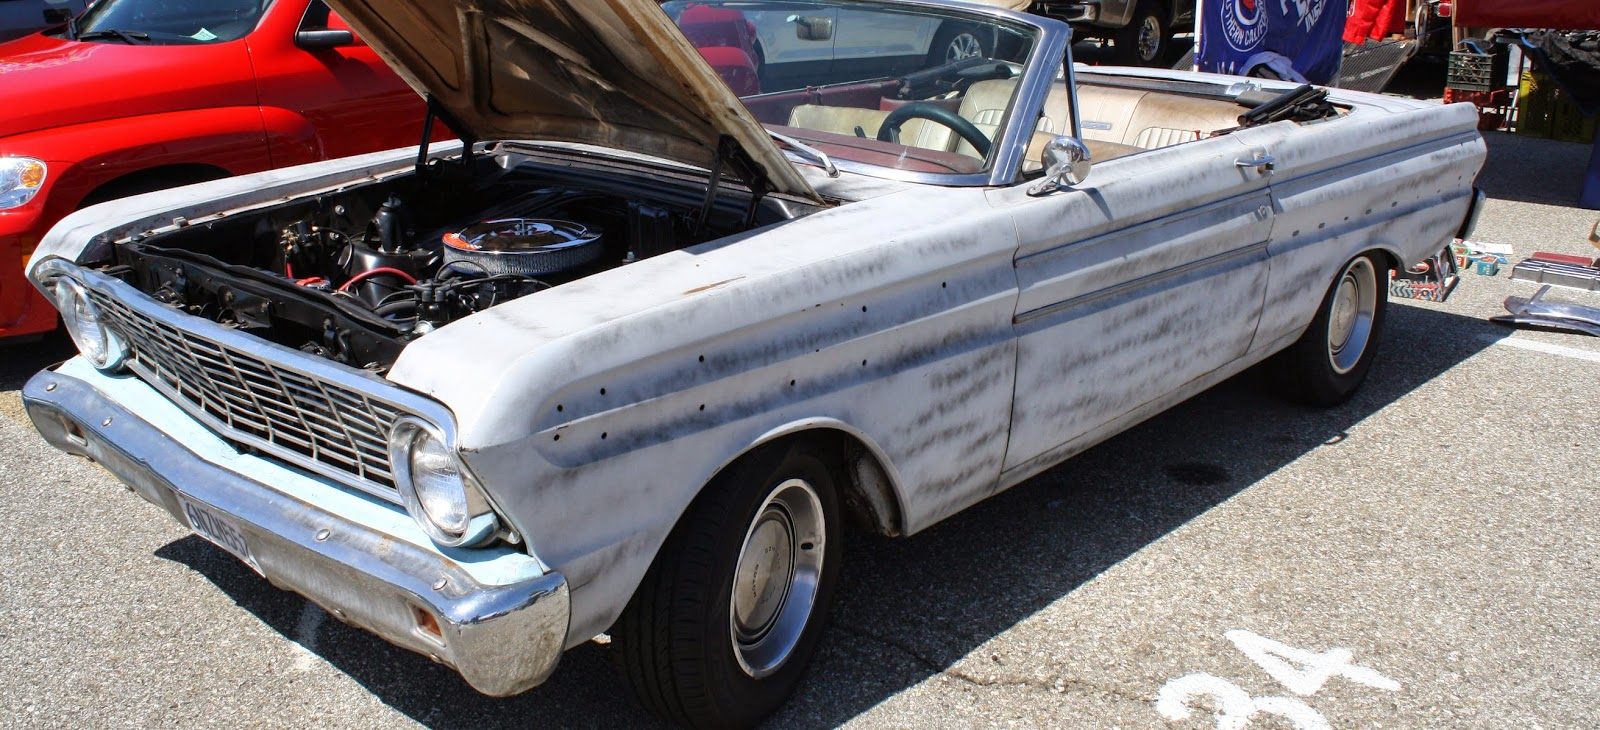 Find a Project Car : How to buy a classic car on a budget